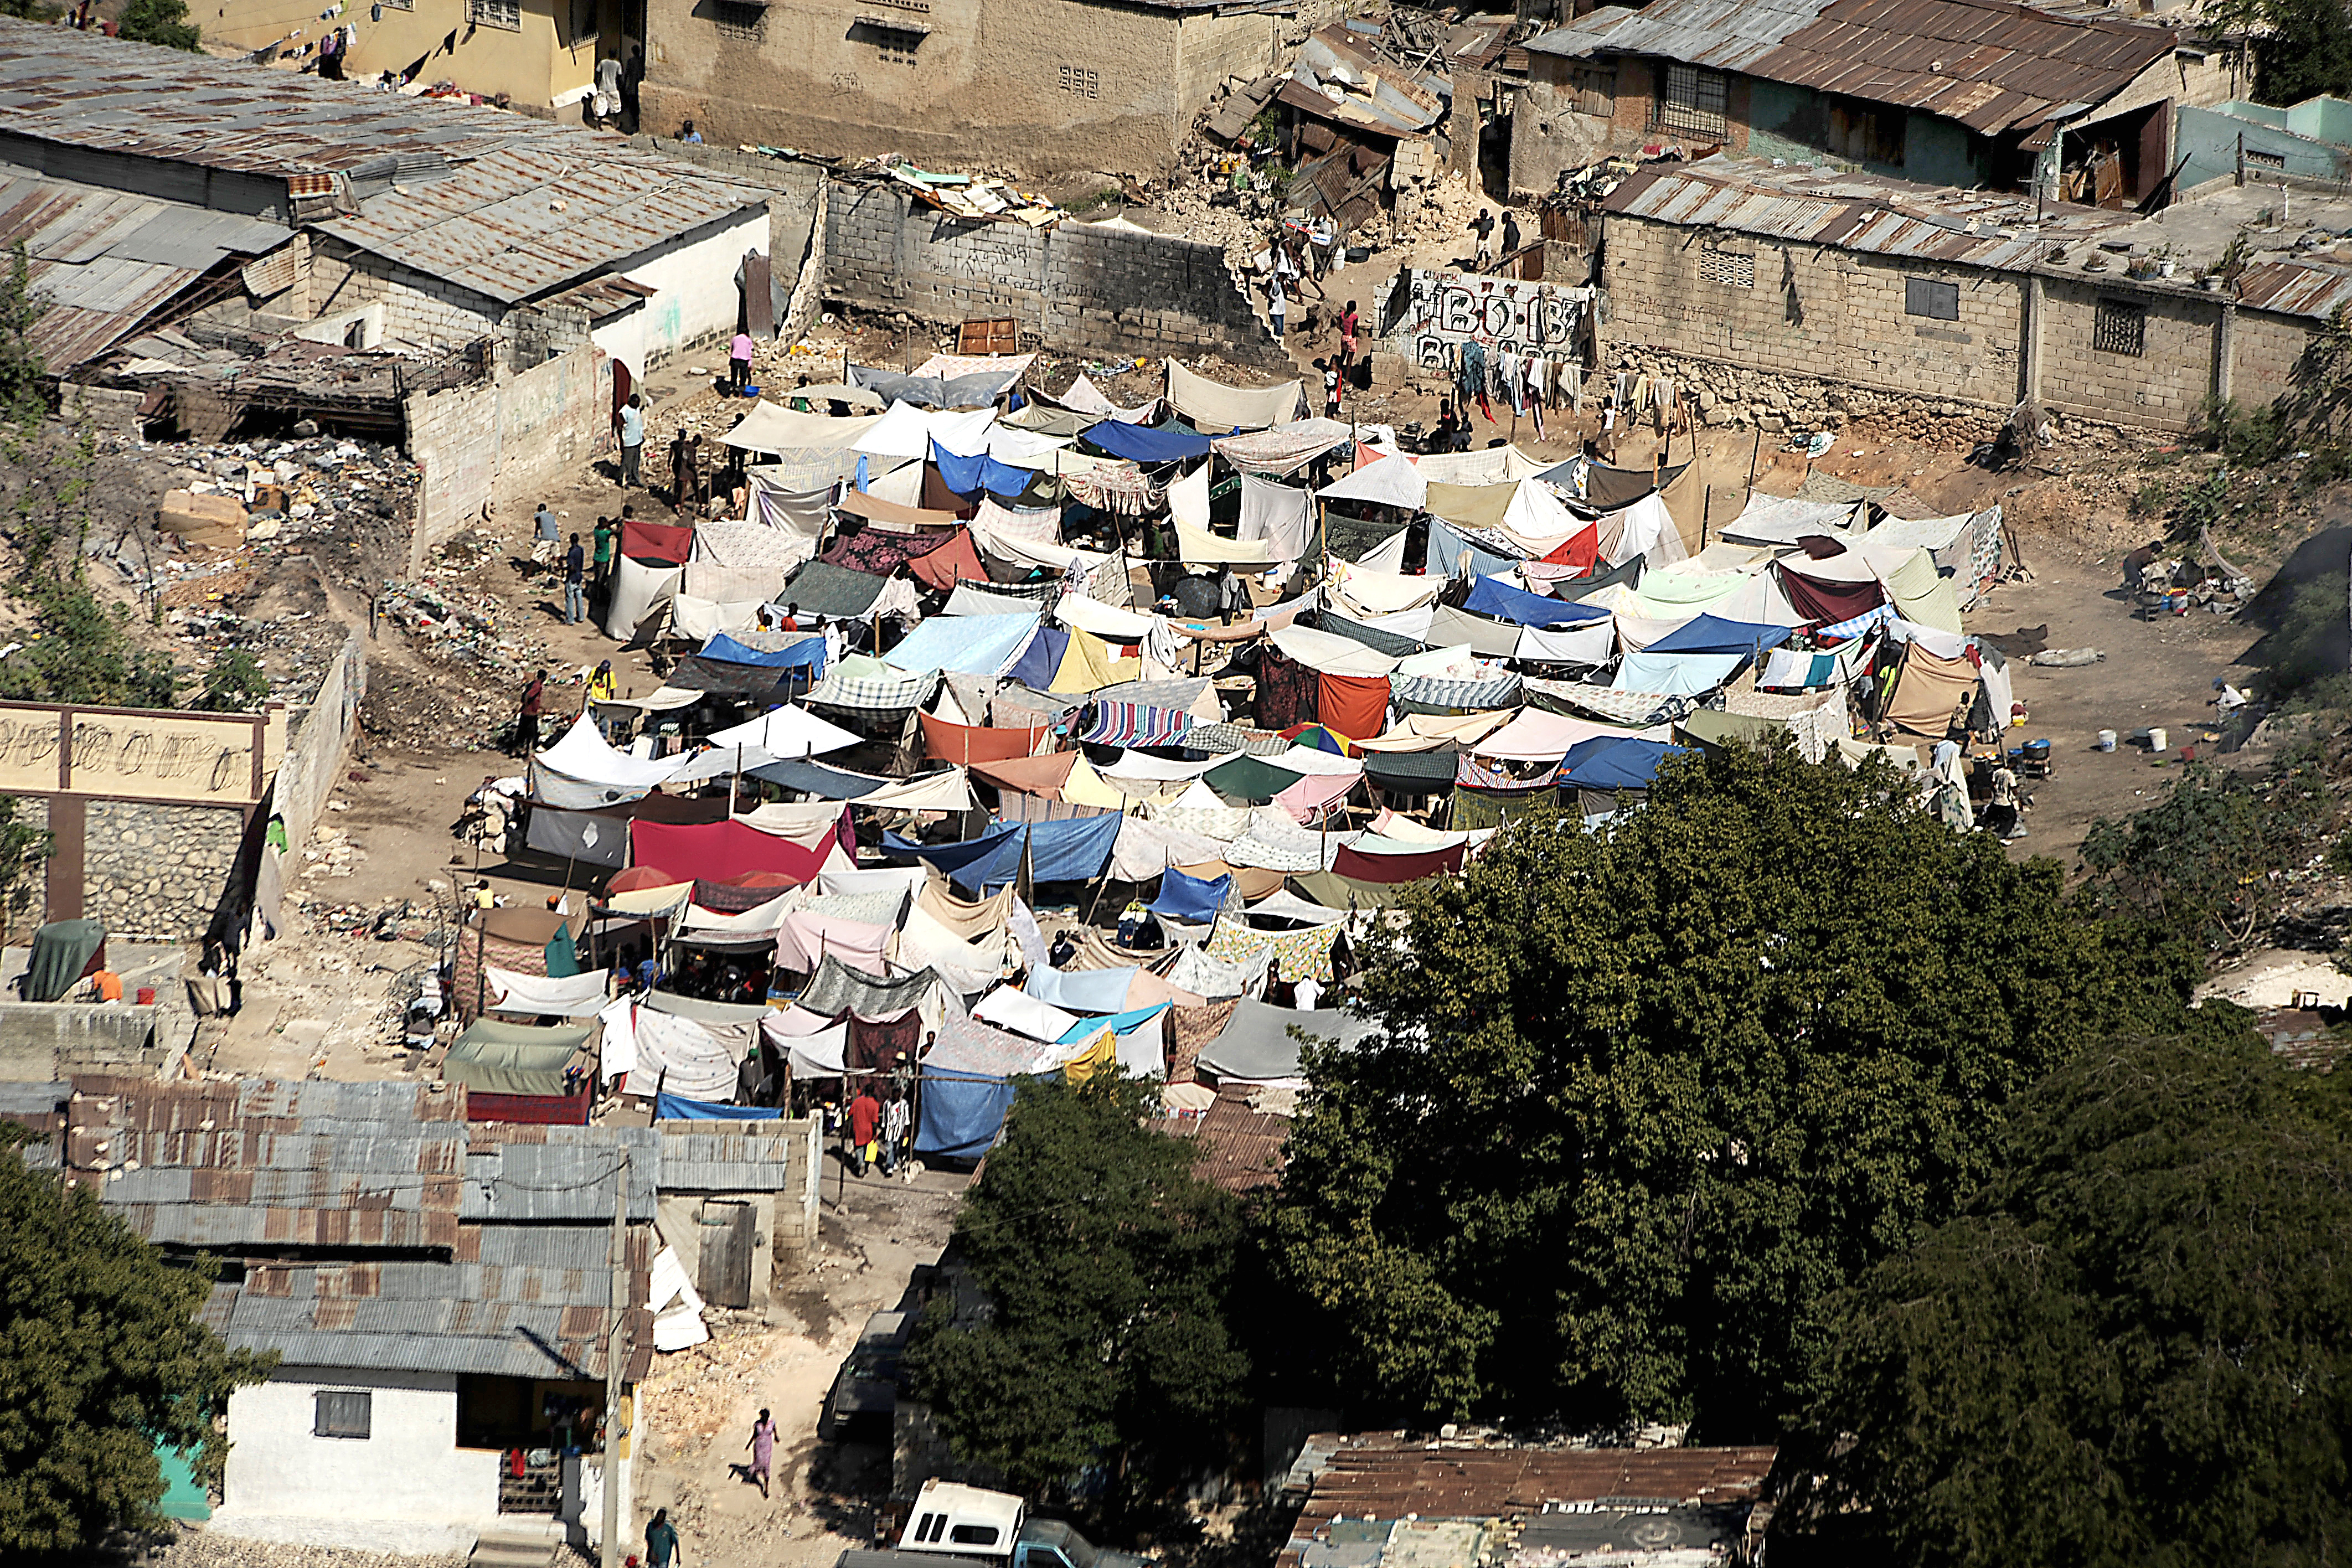 Fileearthquake Damage In Downtown Portauprince  Jpg  Fileearthquake Damage In Downtown Portauprince